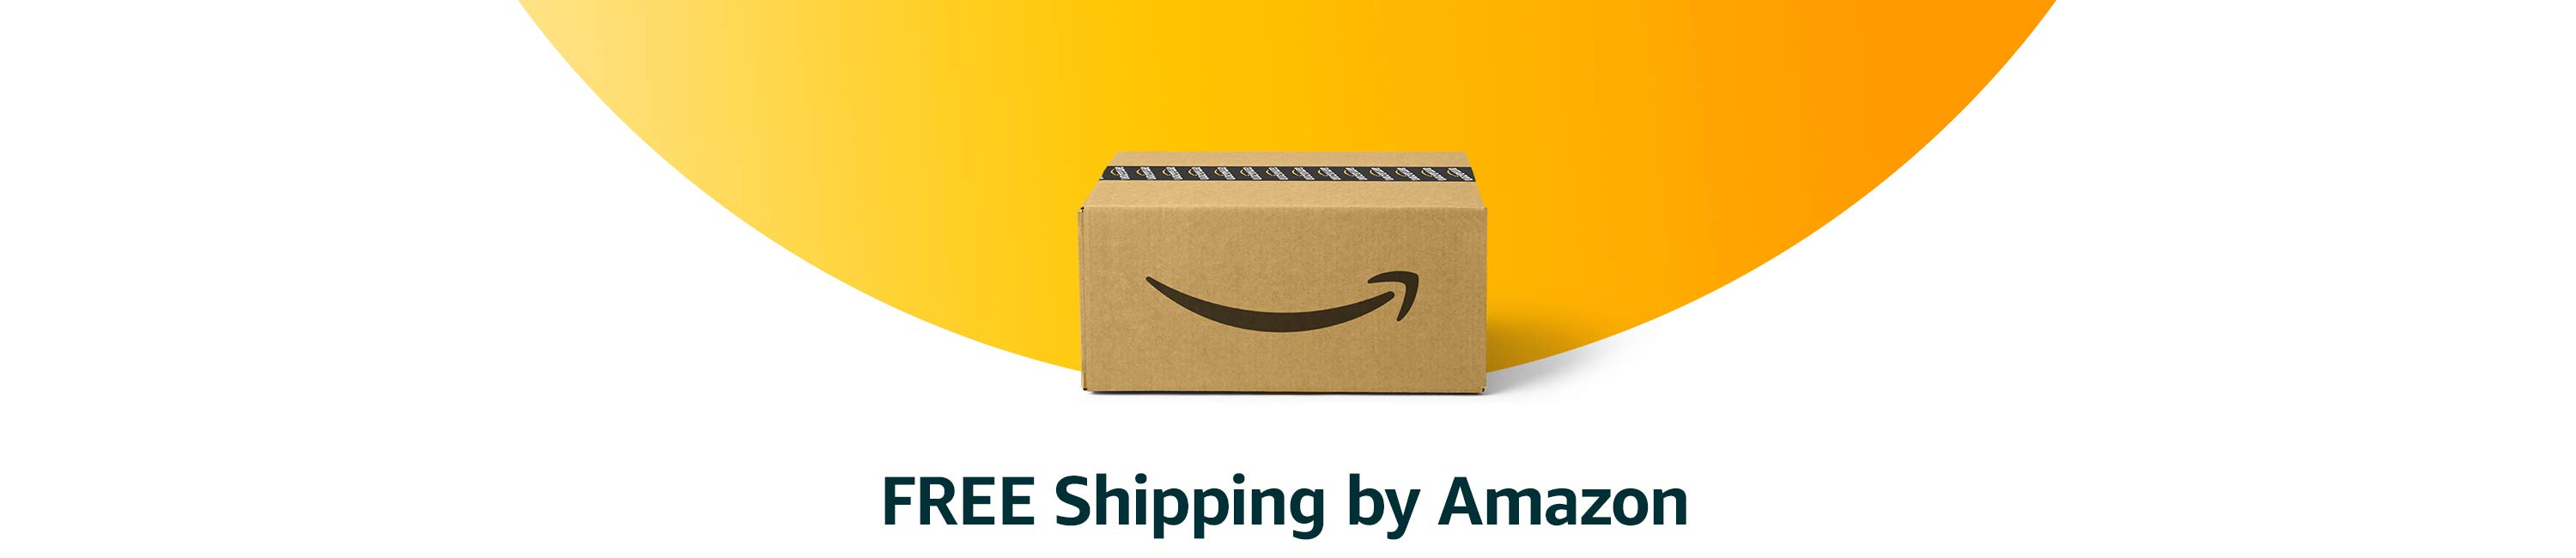 Free Shipping on eligible orders over £20